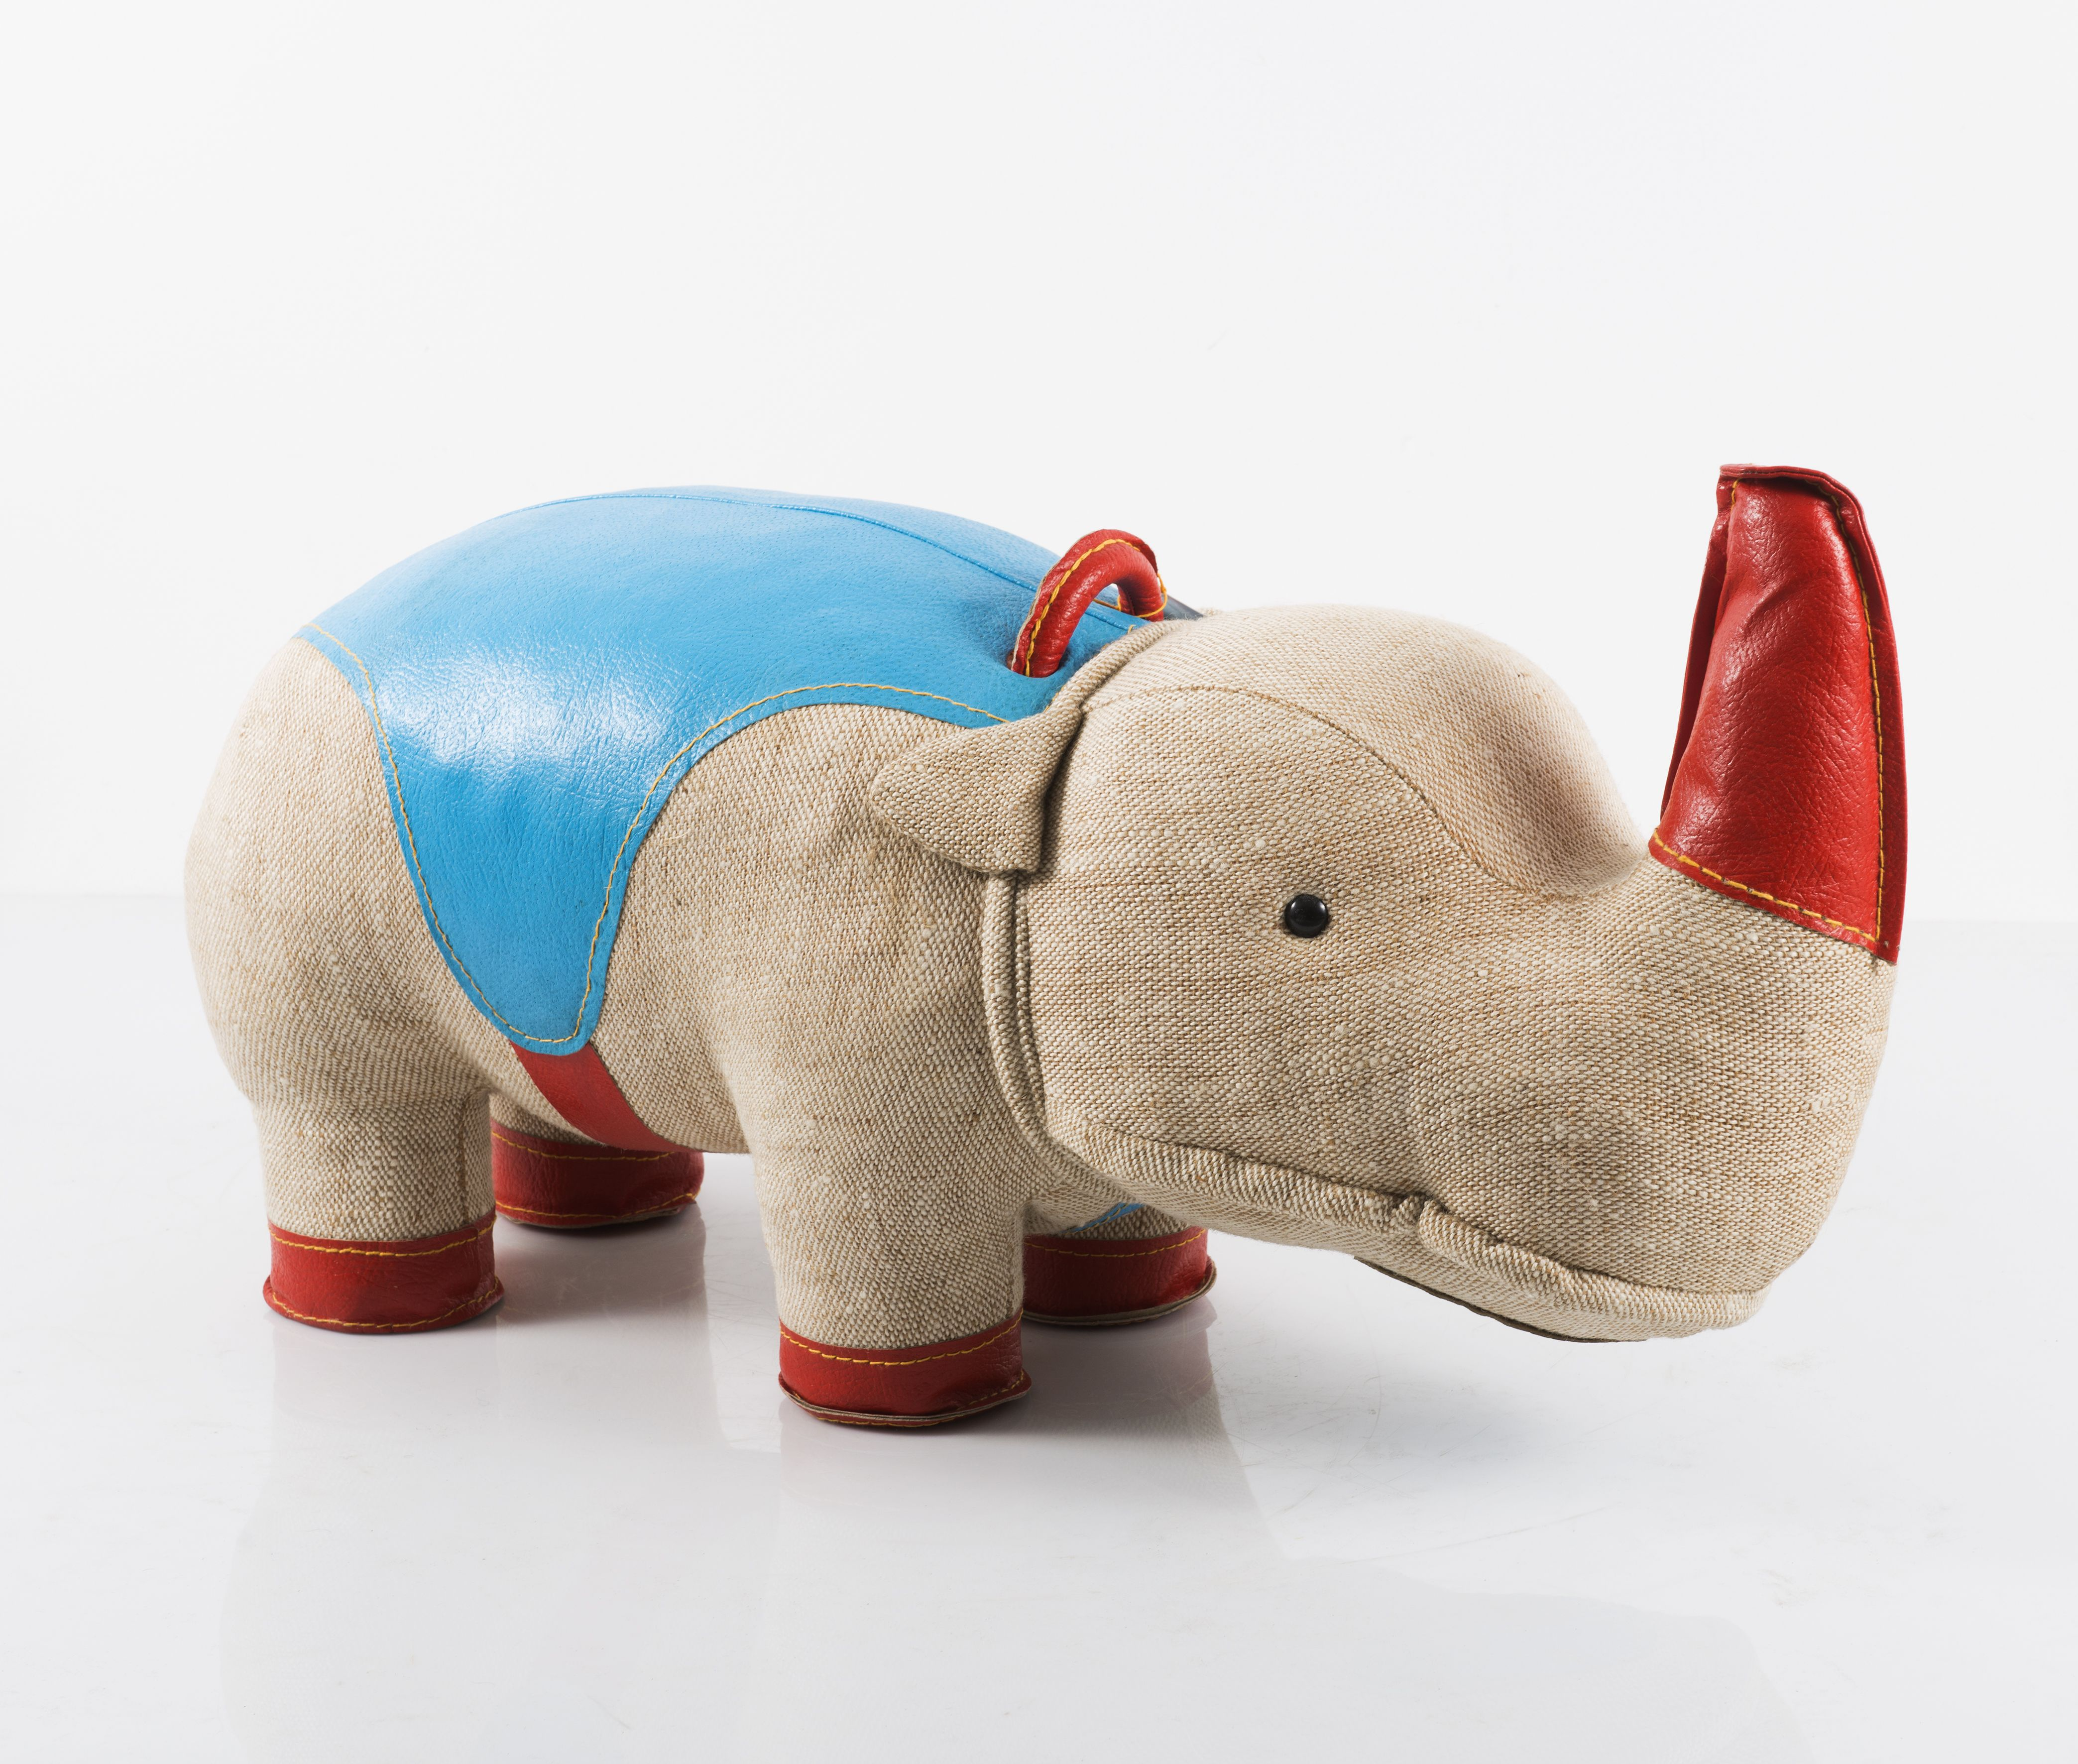 auction 121A lot 153 Renate Müller. Rhino, c1968